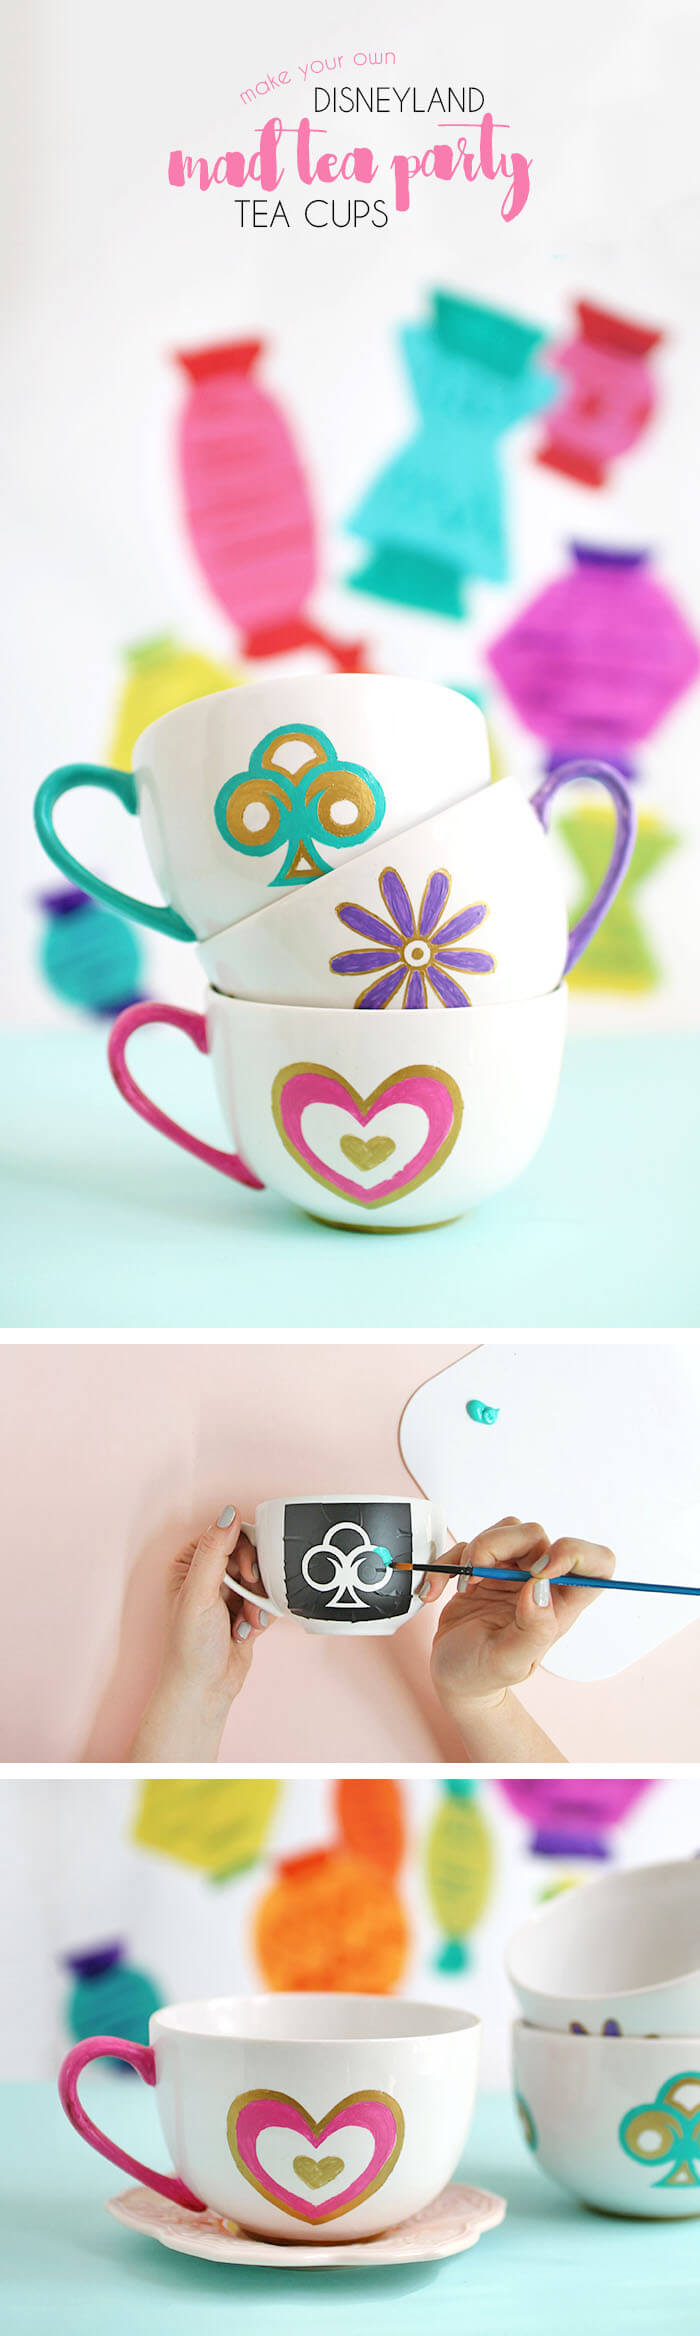 Paint your own DIY Disneyland Tea Cups inspired by the Mad Tea Party ride at Disneyland.